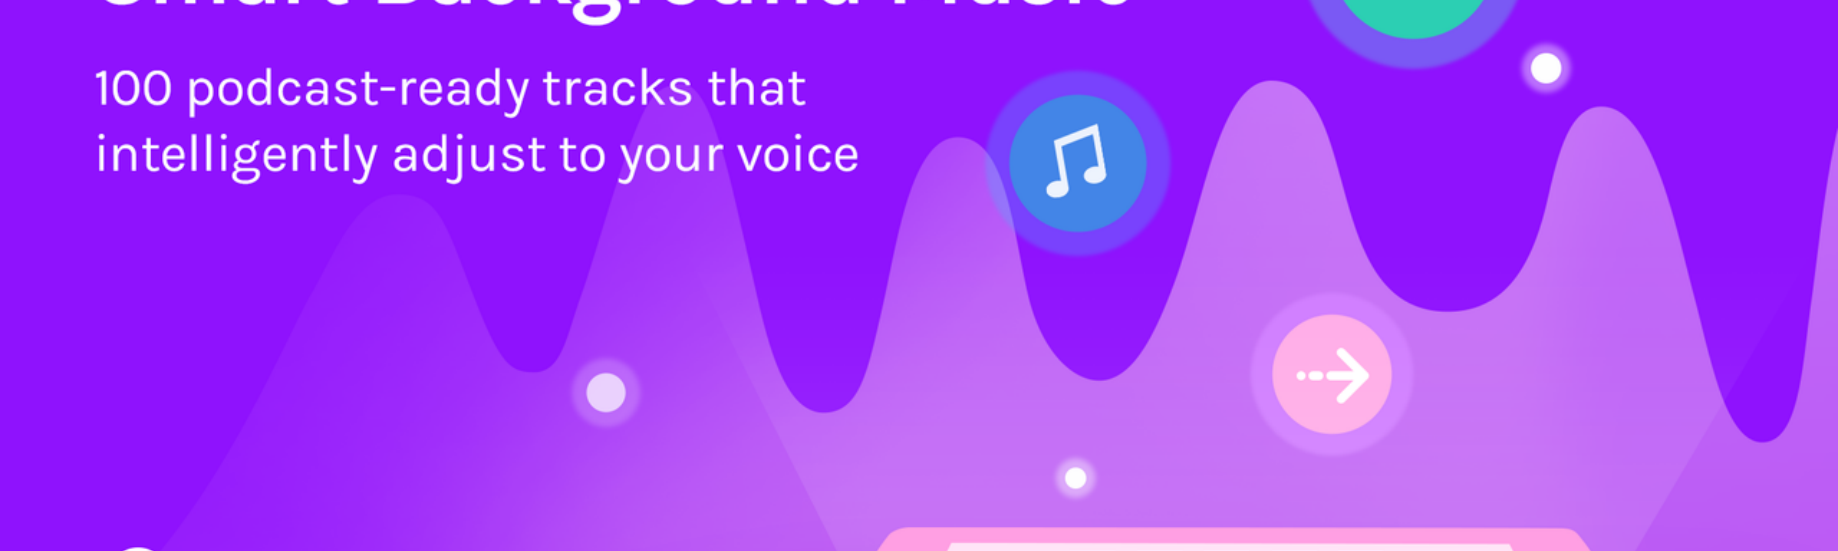 Introducing Smart Background Music by Anchor - Anchor - Medium